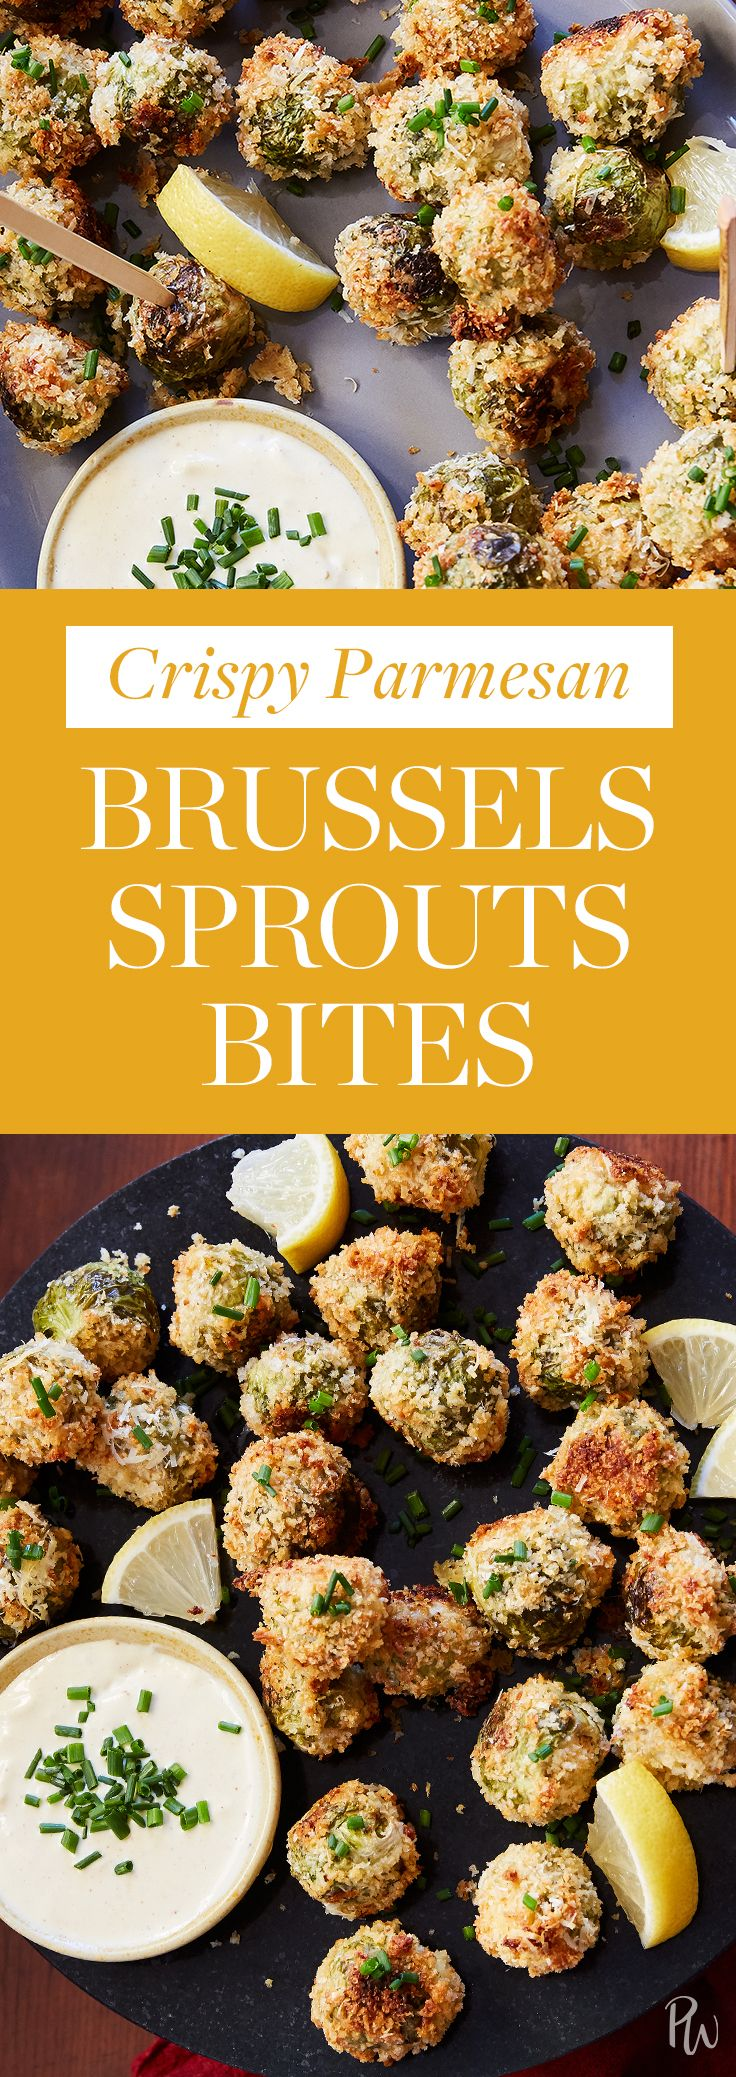 Crispy Parmesan Brussels Sprout Bites #purewow #holiday #recipe #vegetable #appetizer #christmas #food #vegetarian #cooking #party